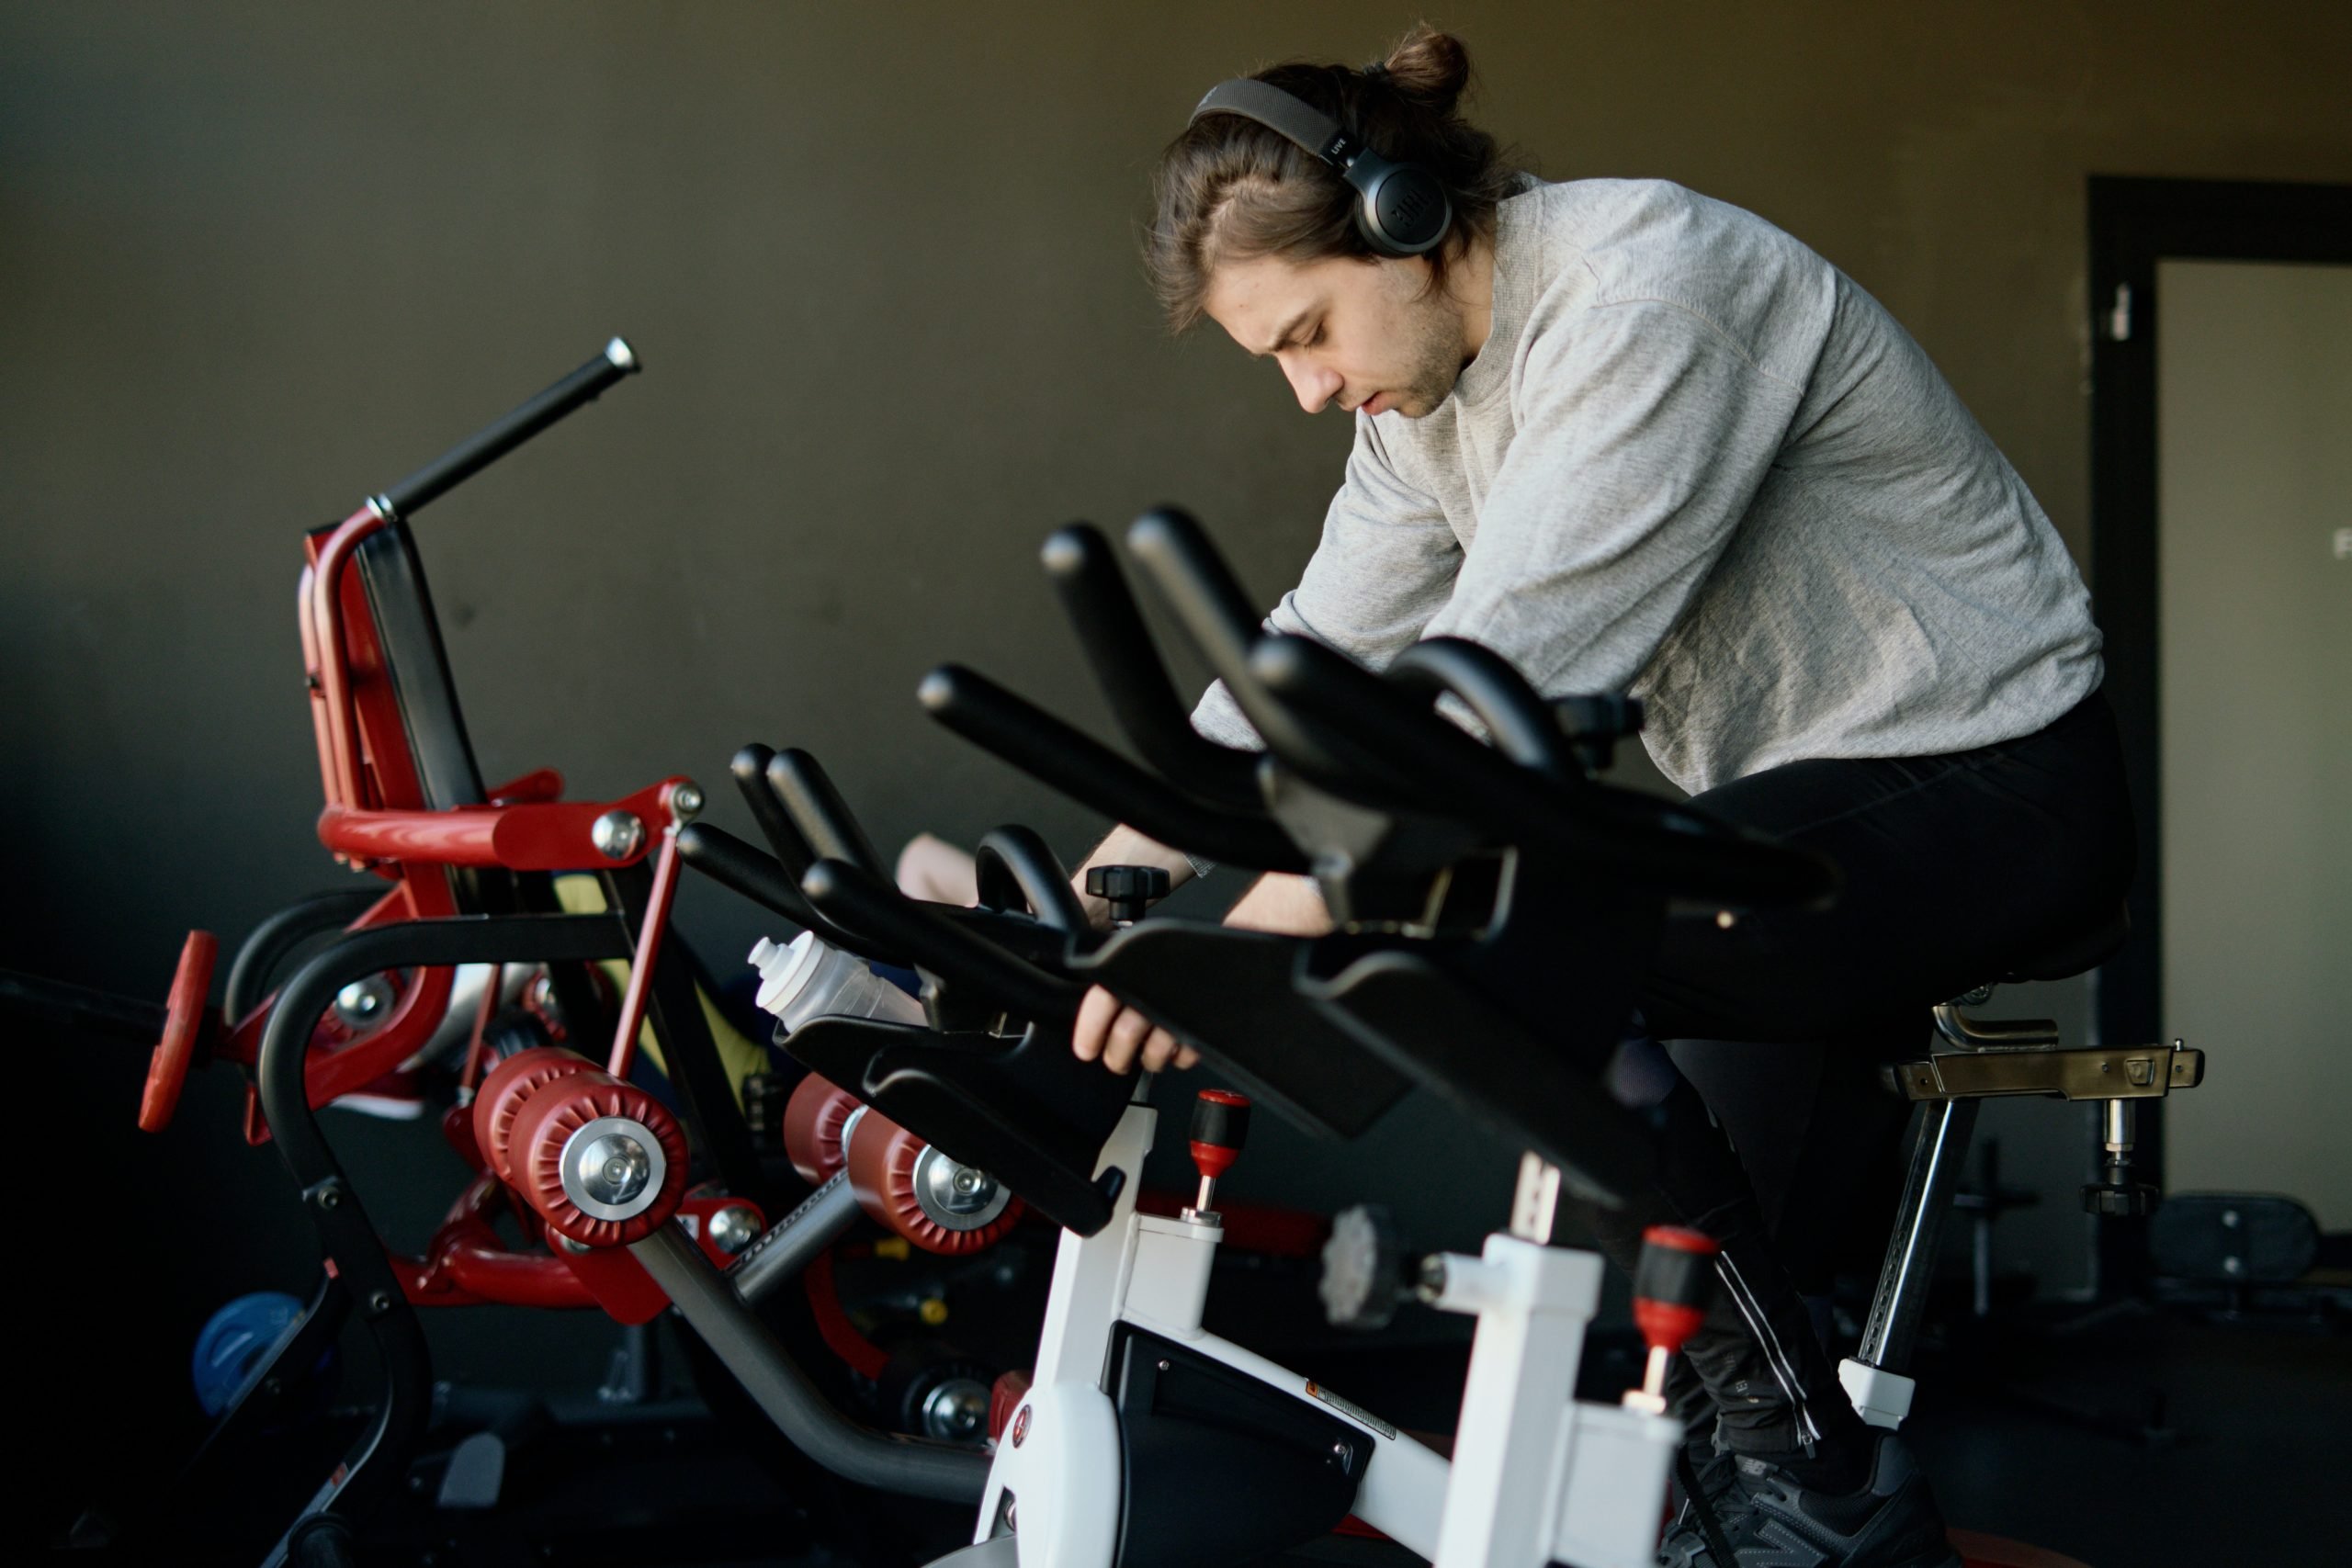 5 Best Recumbent Exercise Bikes in 2021